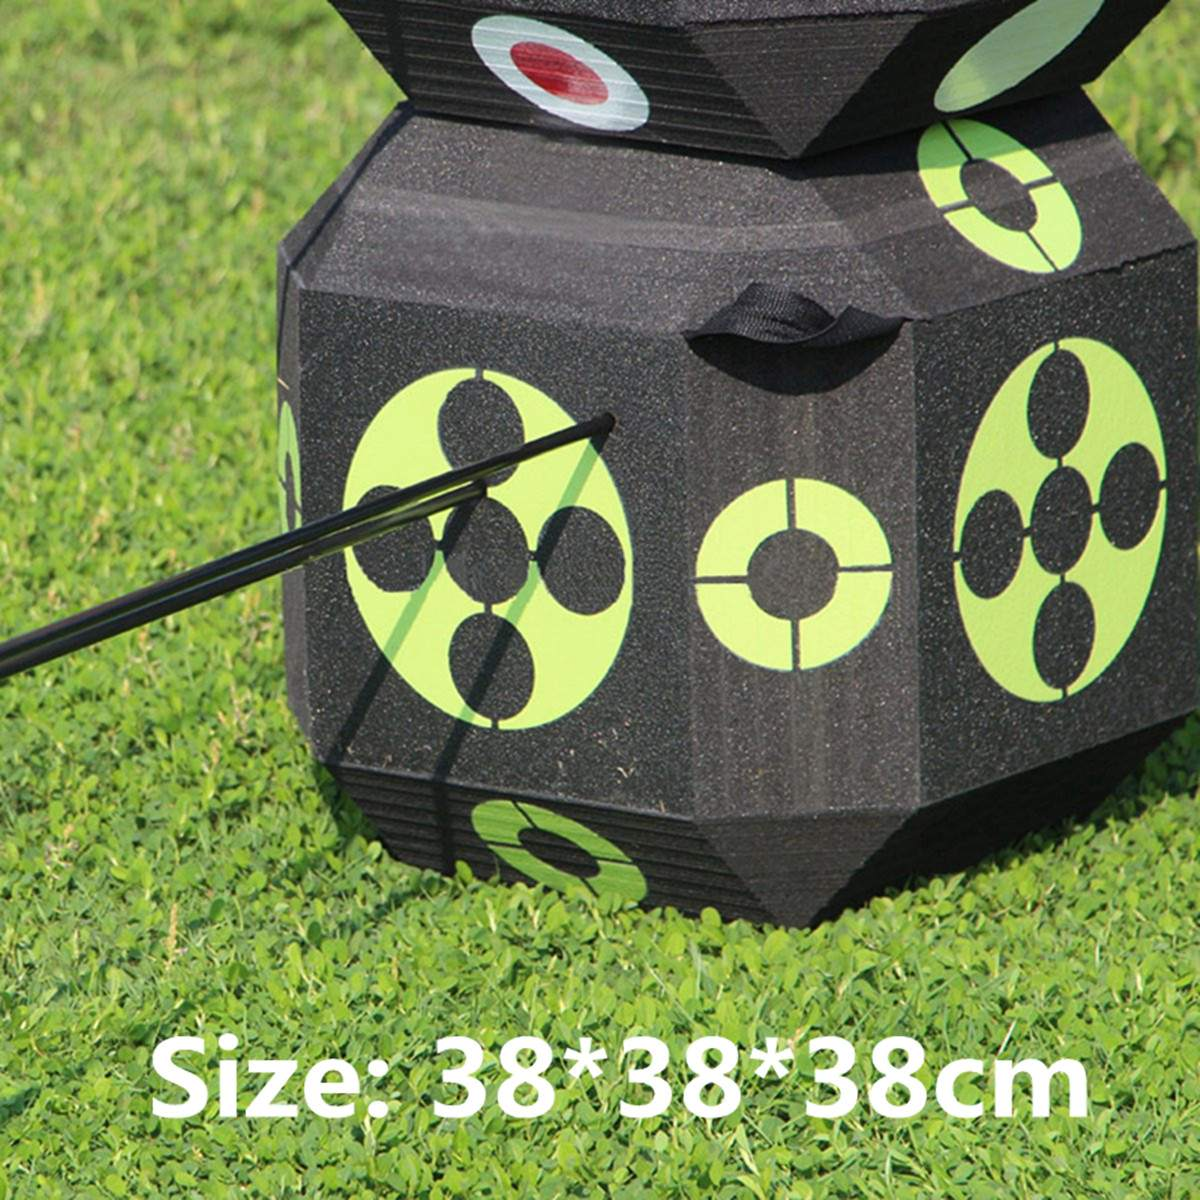 Archery 3D Target Dice 38cm Sides for Shooting Hunting Practice Training Arrow Target Cube For Recurve Bow Self Healing FoamArchery 3D Target Dice 38cm Sides for Shooting Hunting Practice Training Arrow Target Cube For Recurve Bow Self Healing Foam